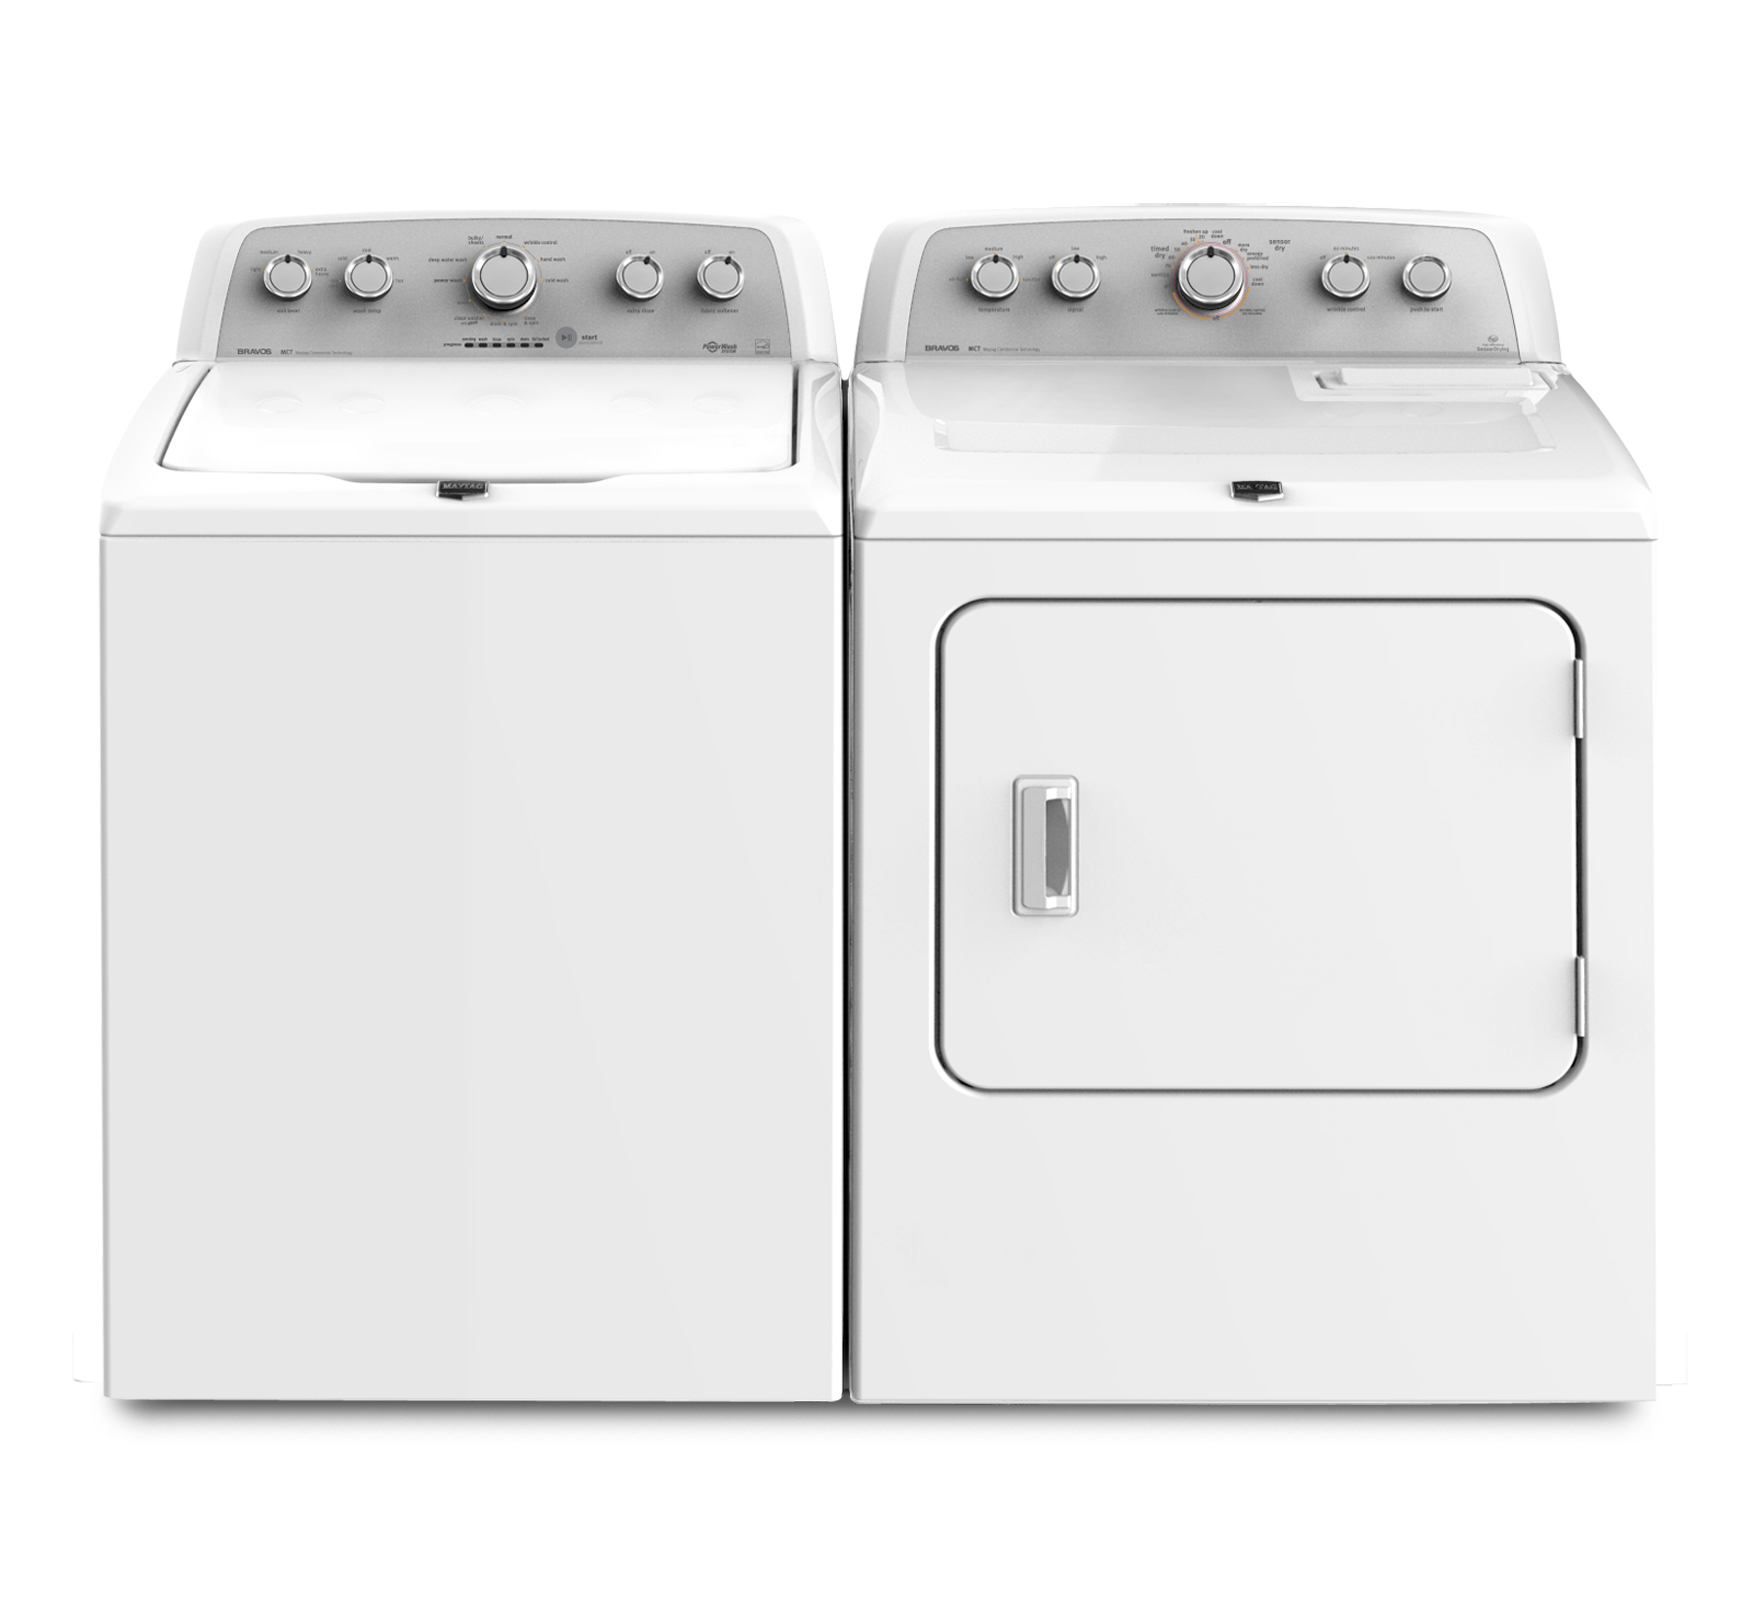 Maytag 7.0 cu. ft. Bravos X™ Electric Dryer - White